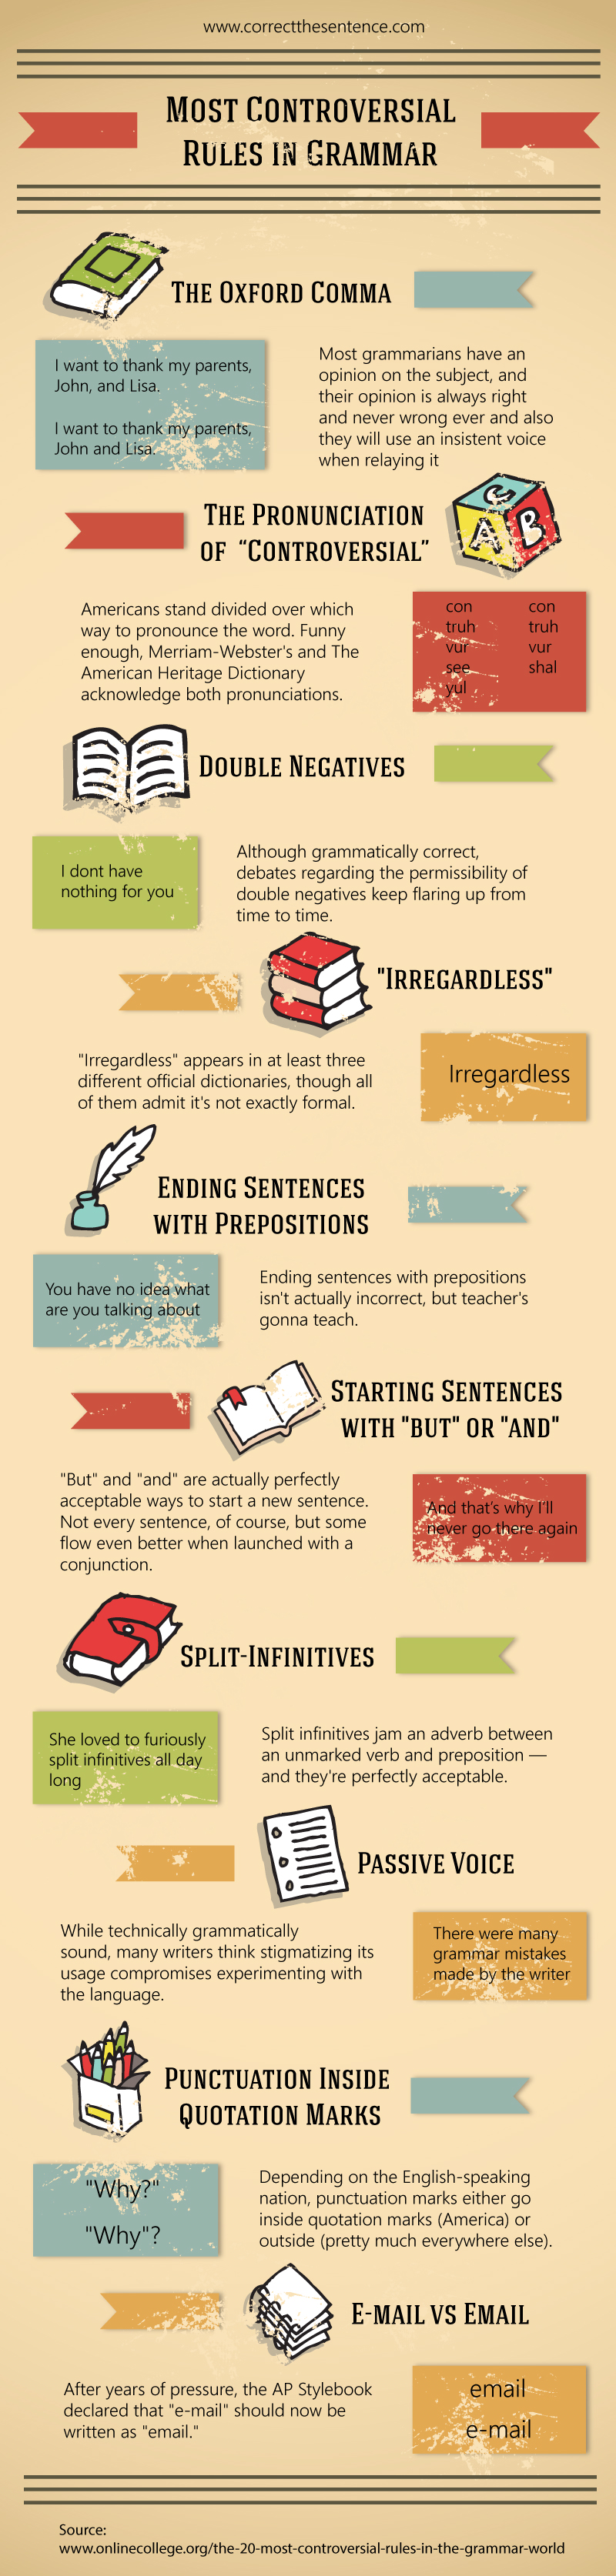 Most Controversial Rules In Grammar